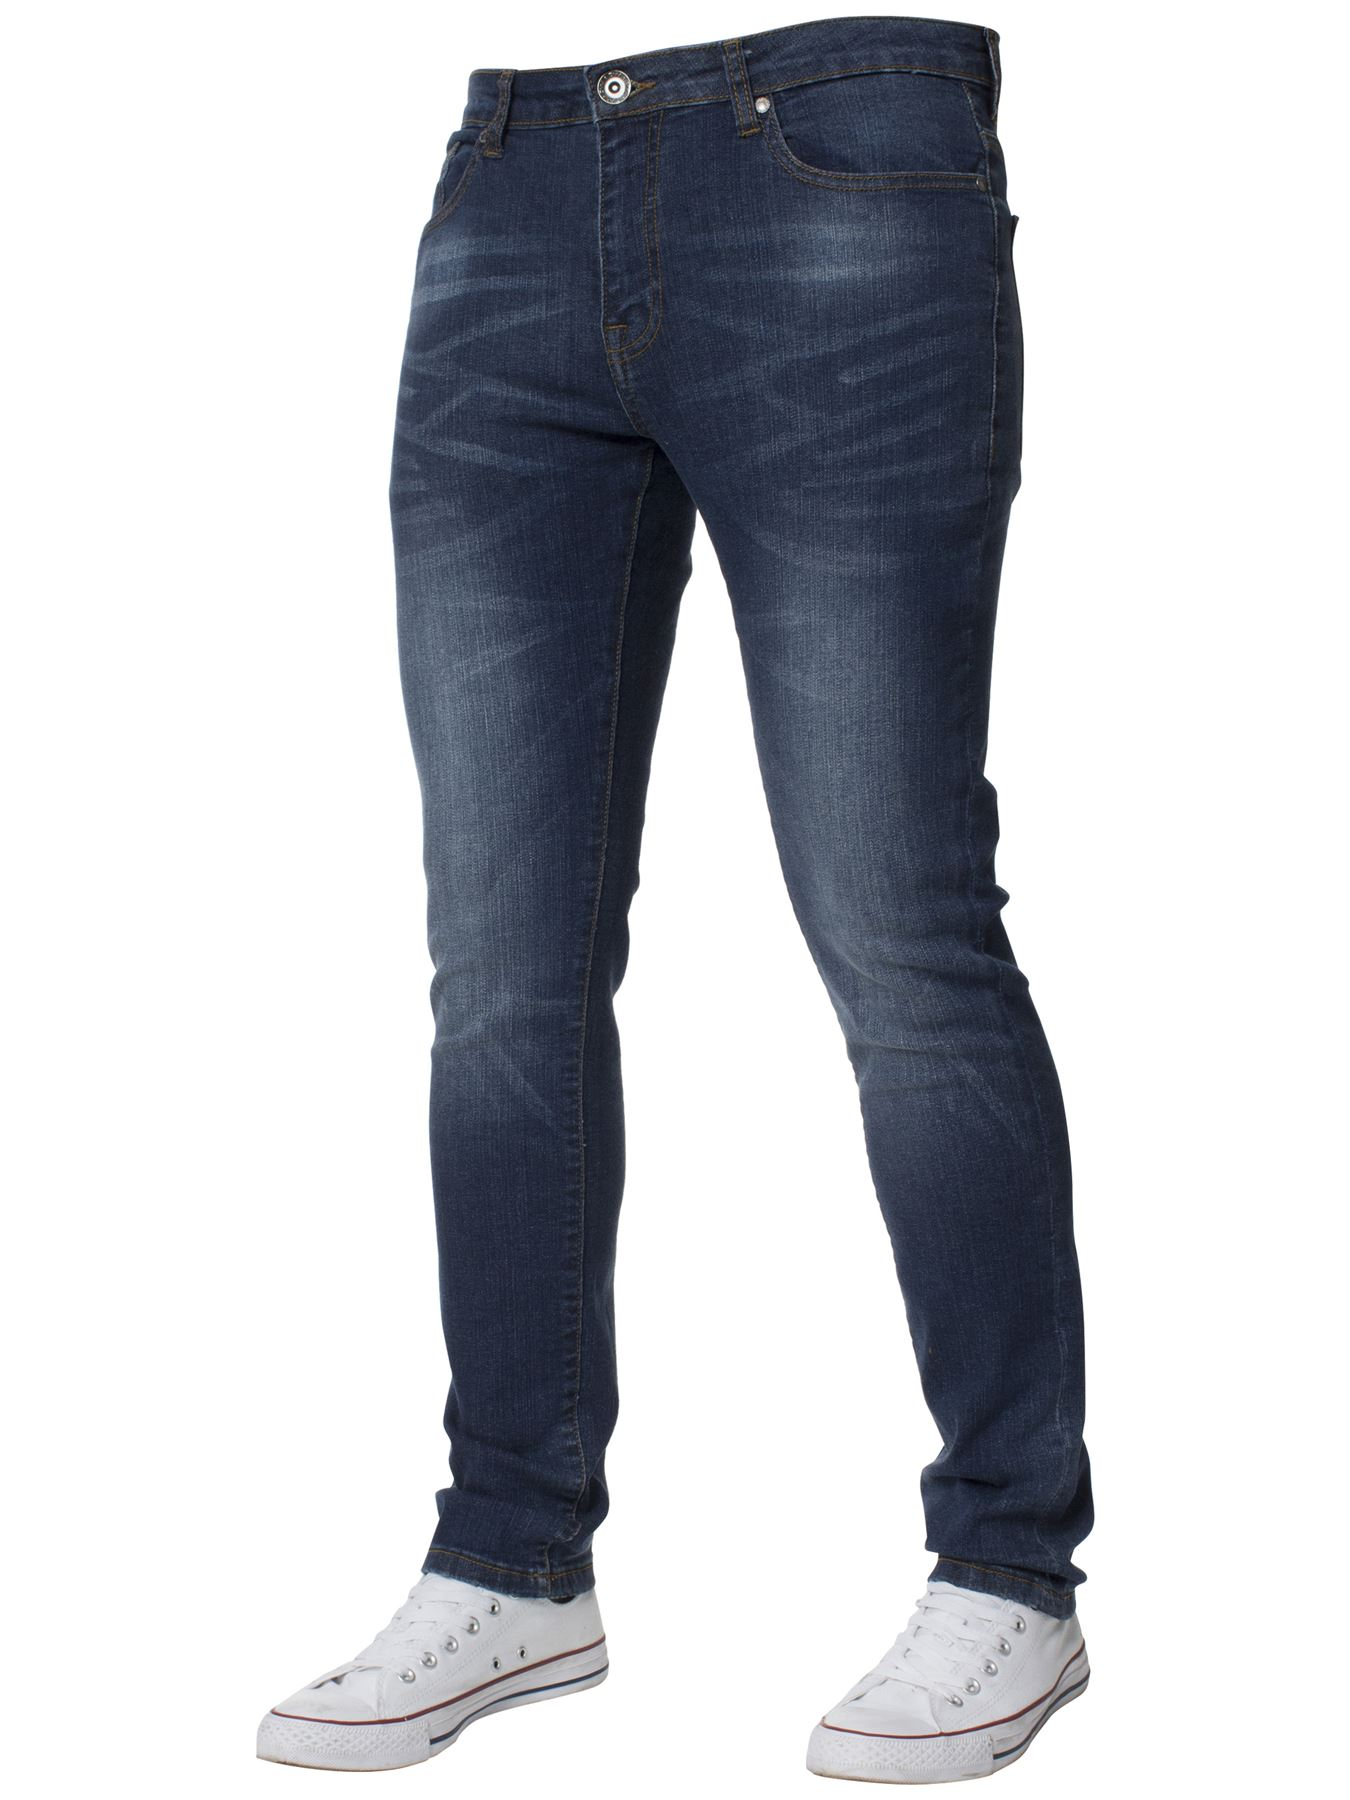 Kruze-Mens-Skinny-Stretch-Flex-Denim-Jeans-Slim-Fit-Trouser-Pants-Big-King-Sizes thumbnail 9